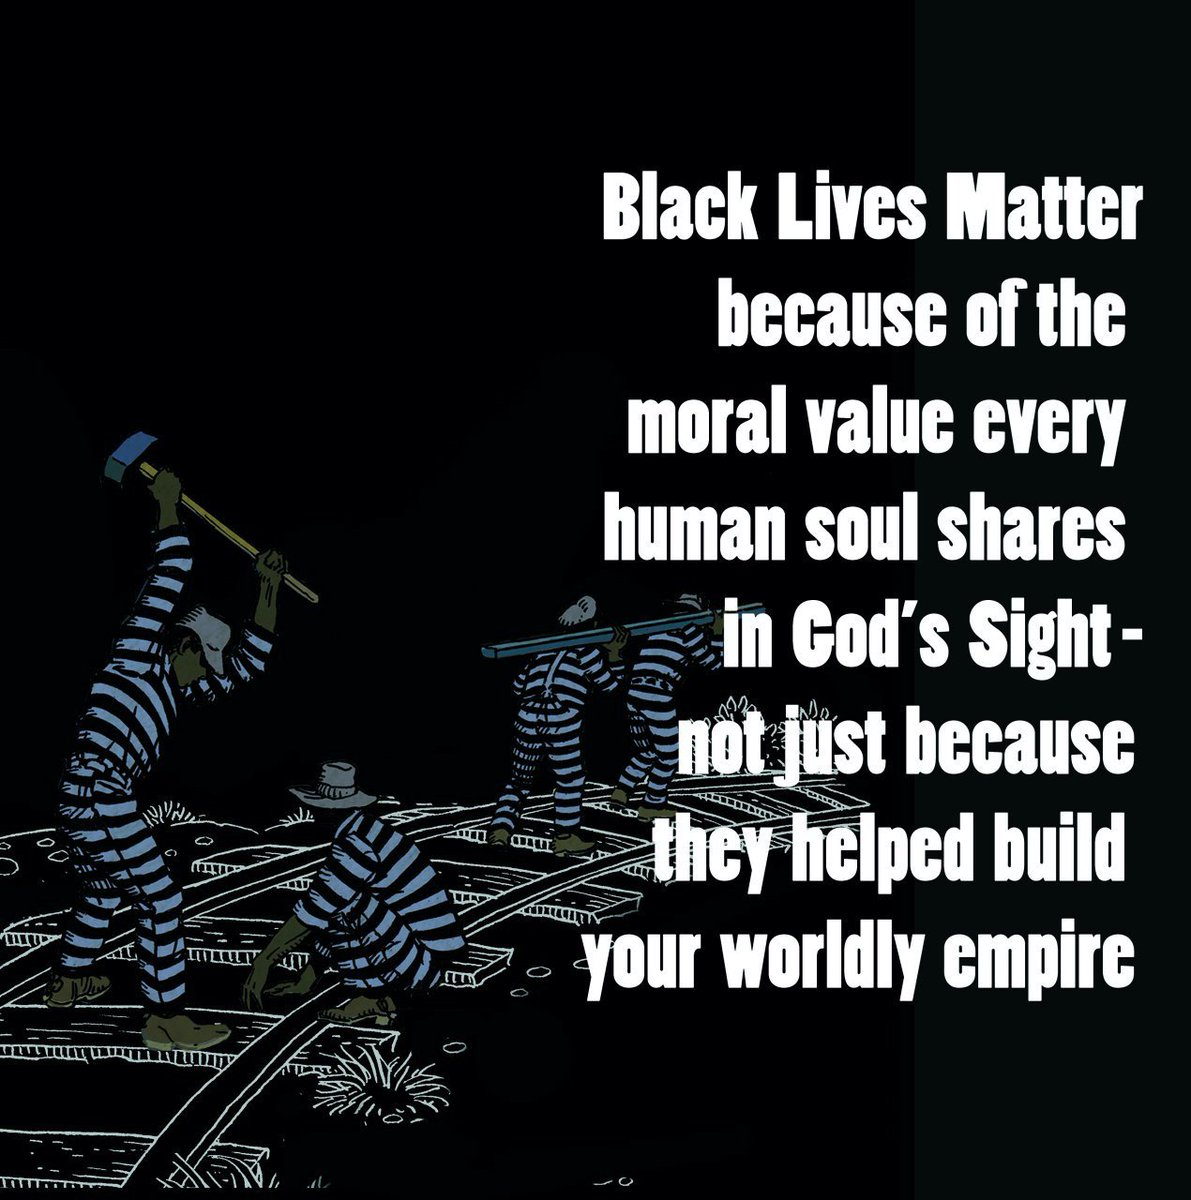 """Black Lives Matter because of the moral value every human soul shares in God's sight - not just because they helped build your worldly empire.""  Yusuf  #BlackLivesMatter https://t.co/Ftd1kcNyGa"